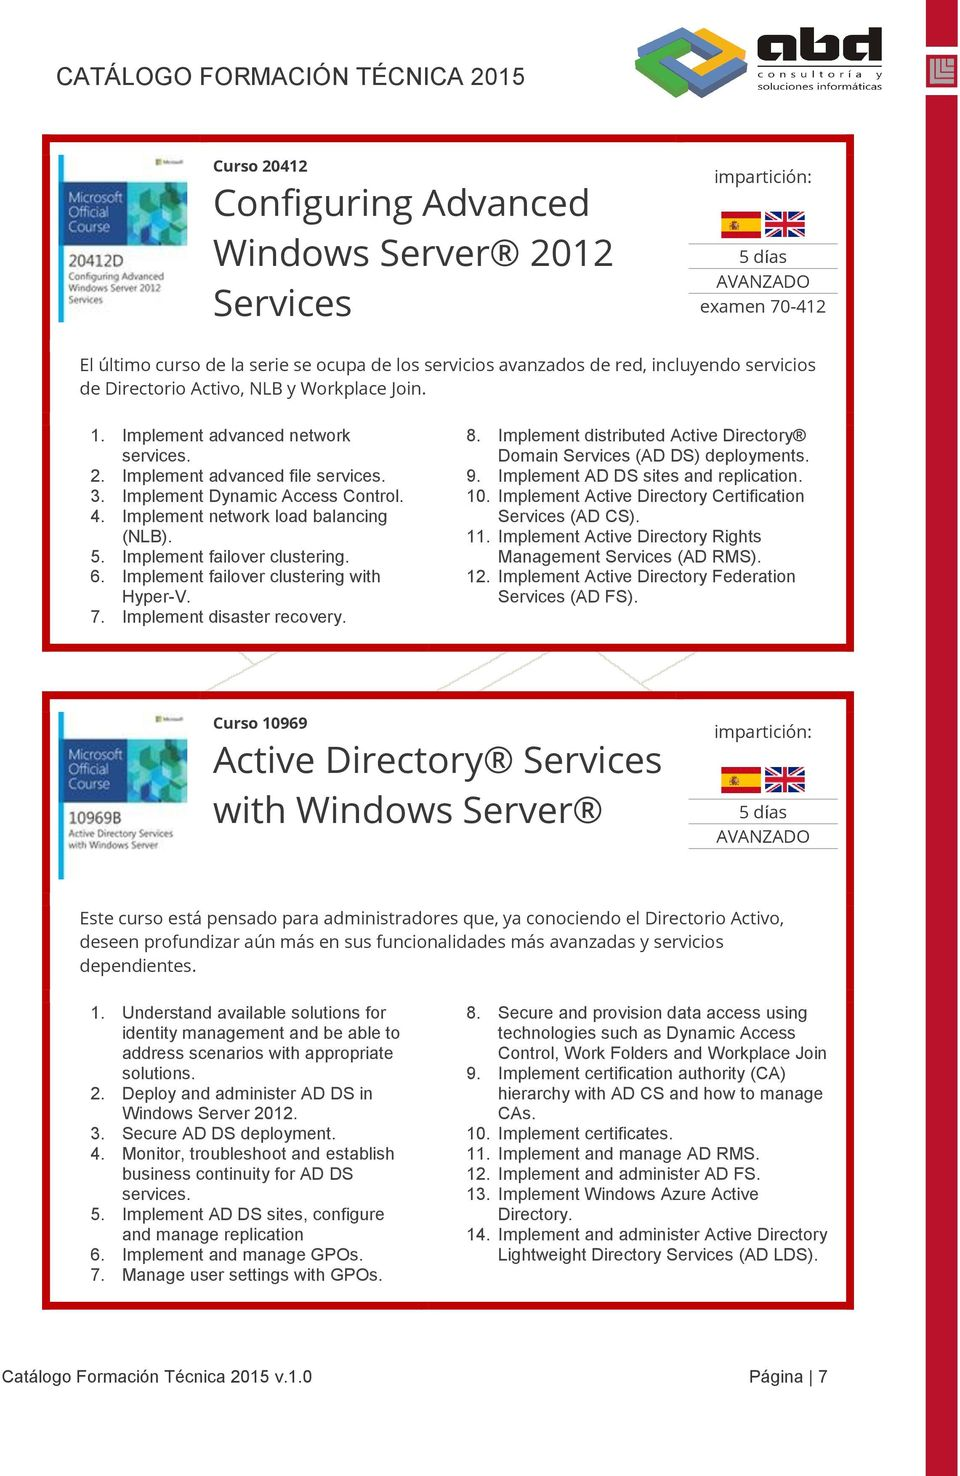 Implement failover clustering. 6. Implement failover clustering with Hyper-V. 7. Implement disaster recovery. 8. Implement distributed Active Directory Domain Services (AD DS) deployments. 9.